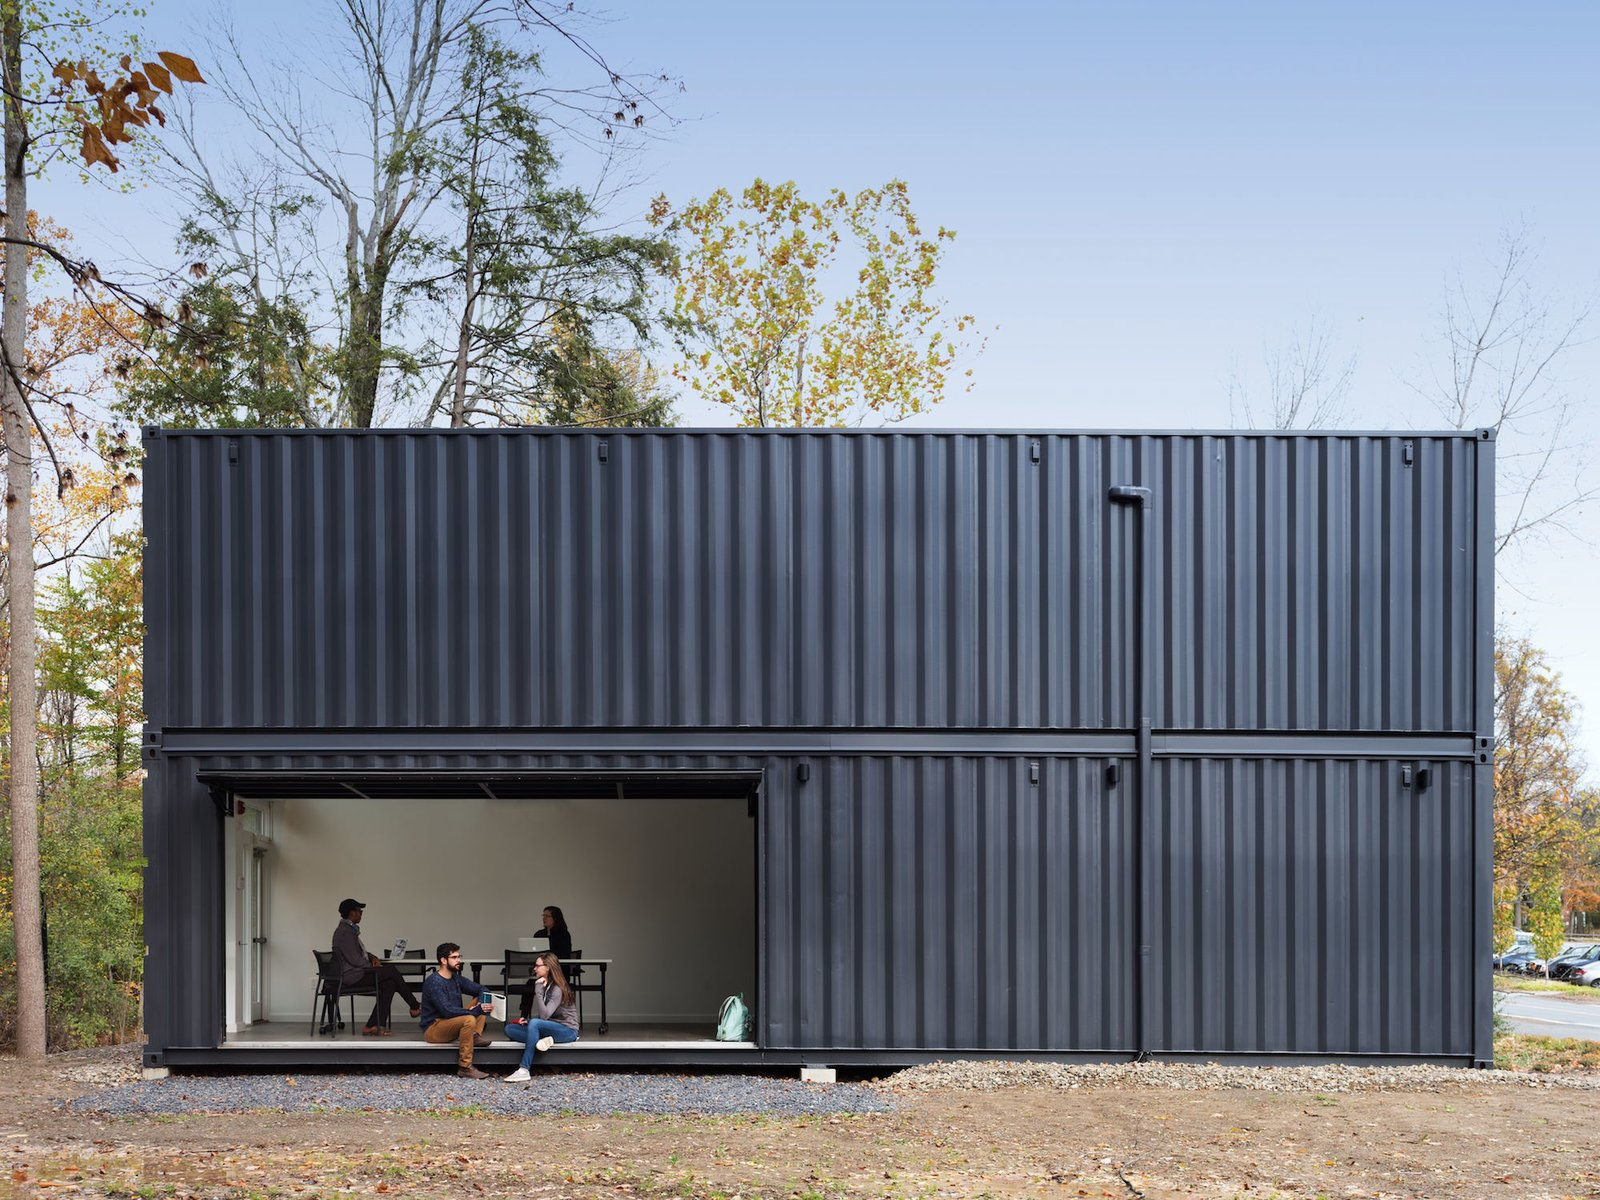 Best Kitchen Gallery: A Shipping Container Prefab Lab Is Built In Only 4 Hours Hyde Park of Shipping Container Barn on rachelxblog.com